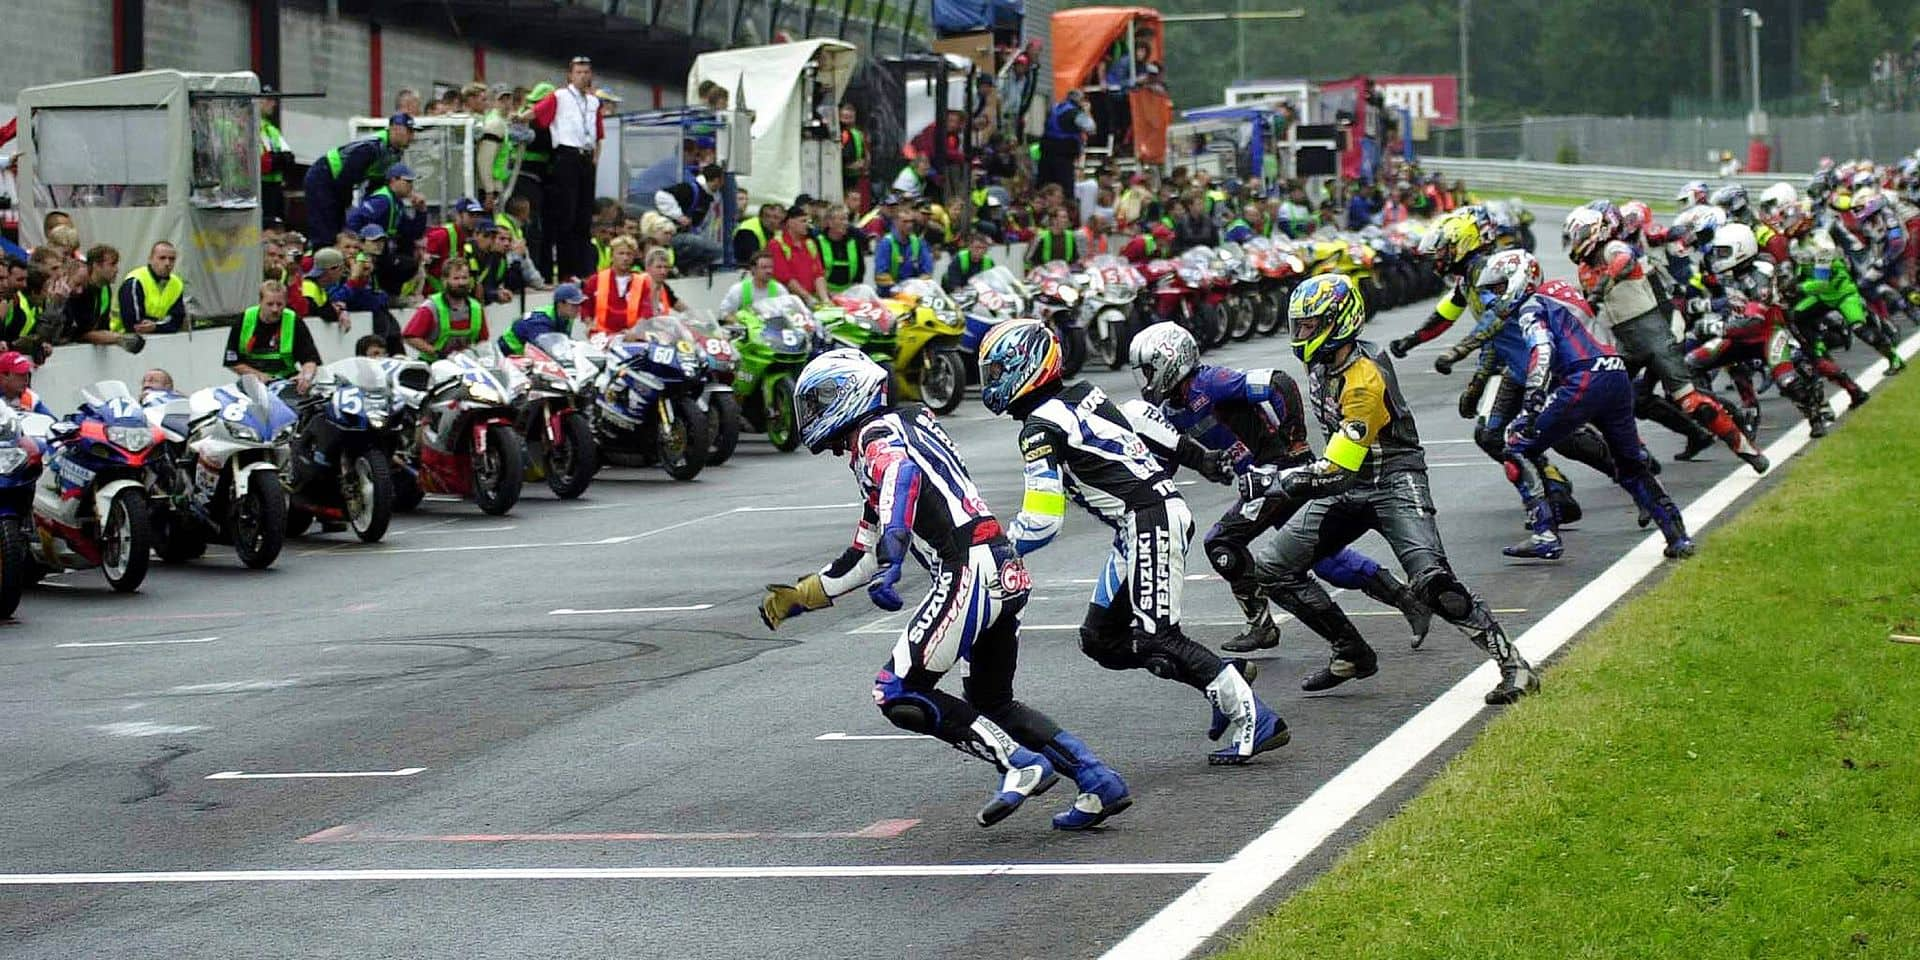 BRU84 - 20030705 - SPA, BELGIUM : Riders run to their moto at the start of the 24 hours moto of Spa francorchamps, Liege 24 hours, Saturday 05 July 2003, in Spa. BELGA PHOTO MICHEL KRAKOSKI